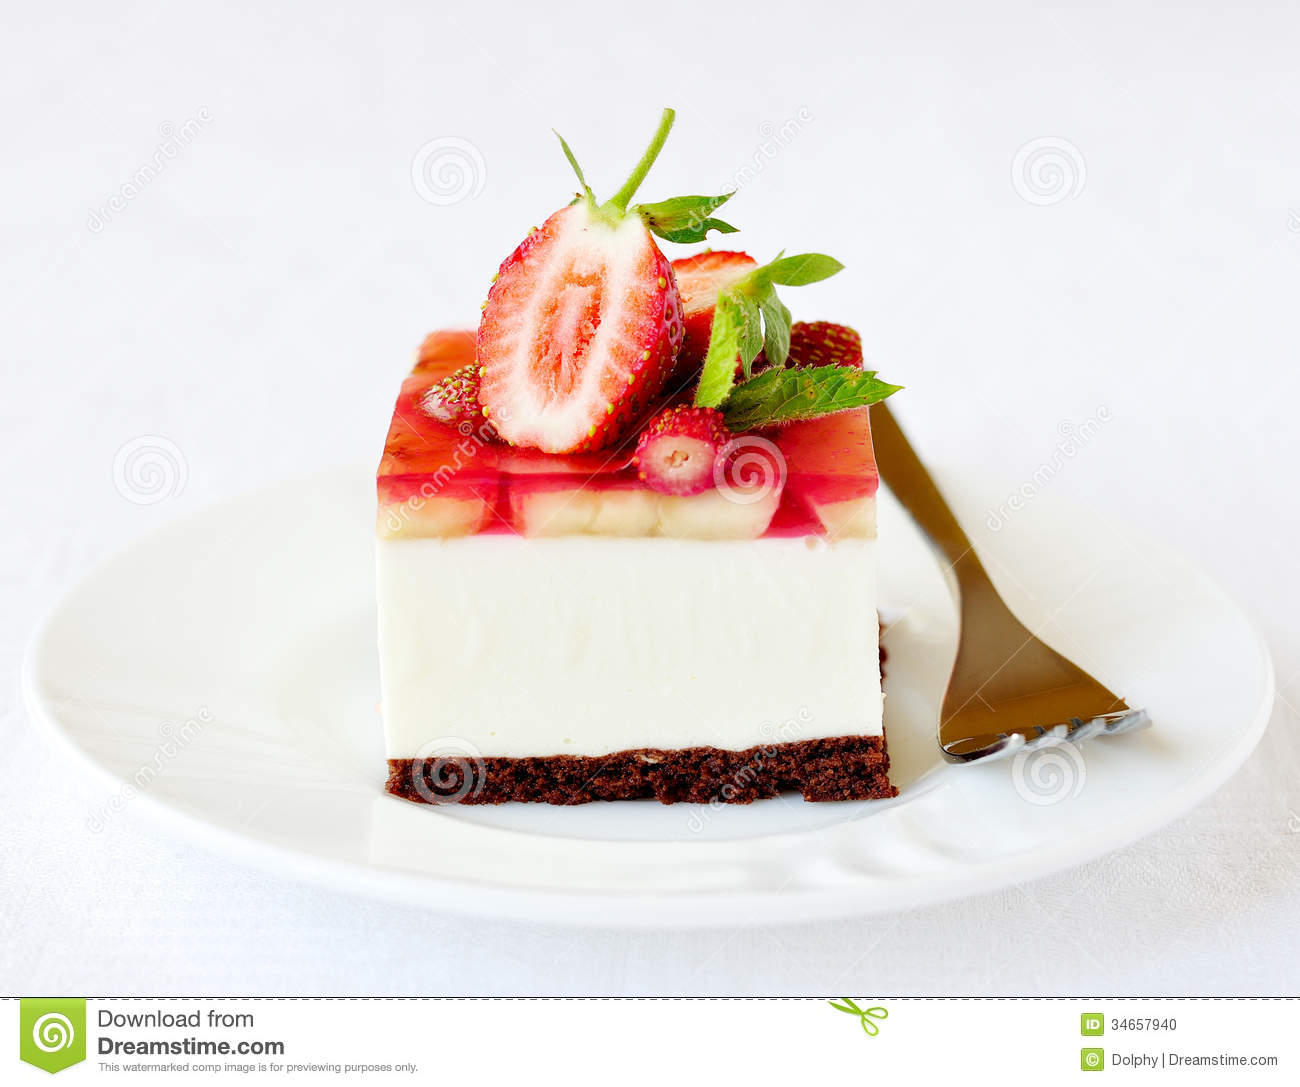 Mint Leaves On Strawberry Cake